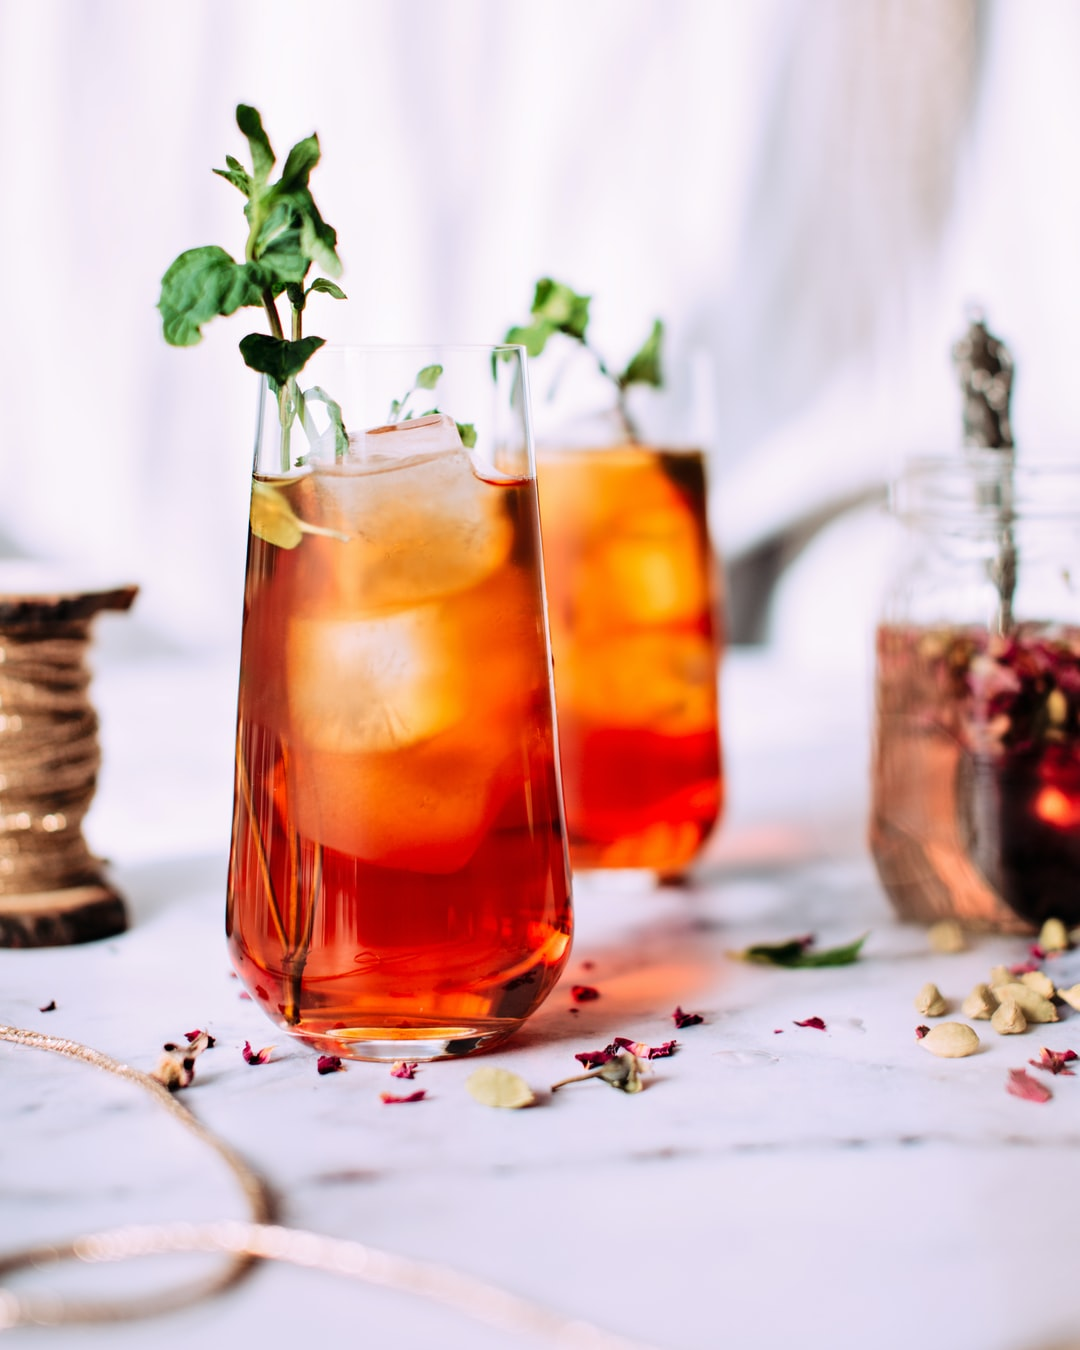 Iced tea with rose syrup